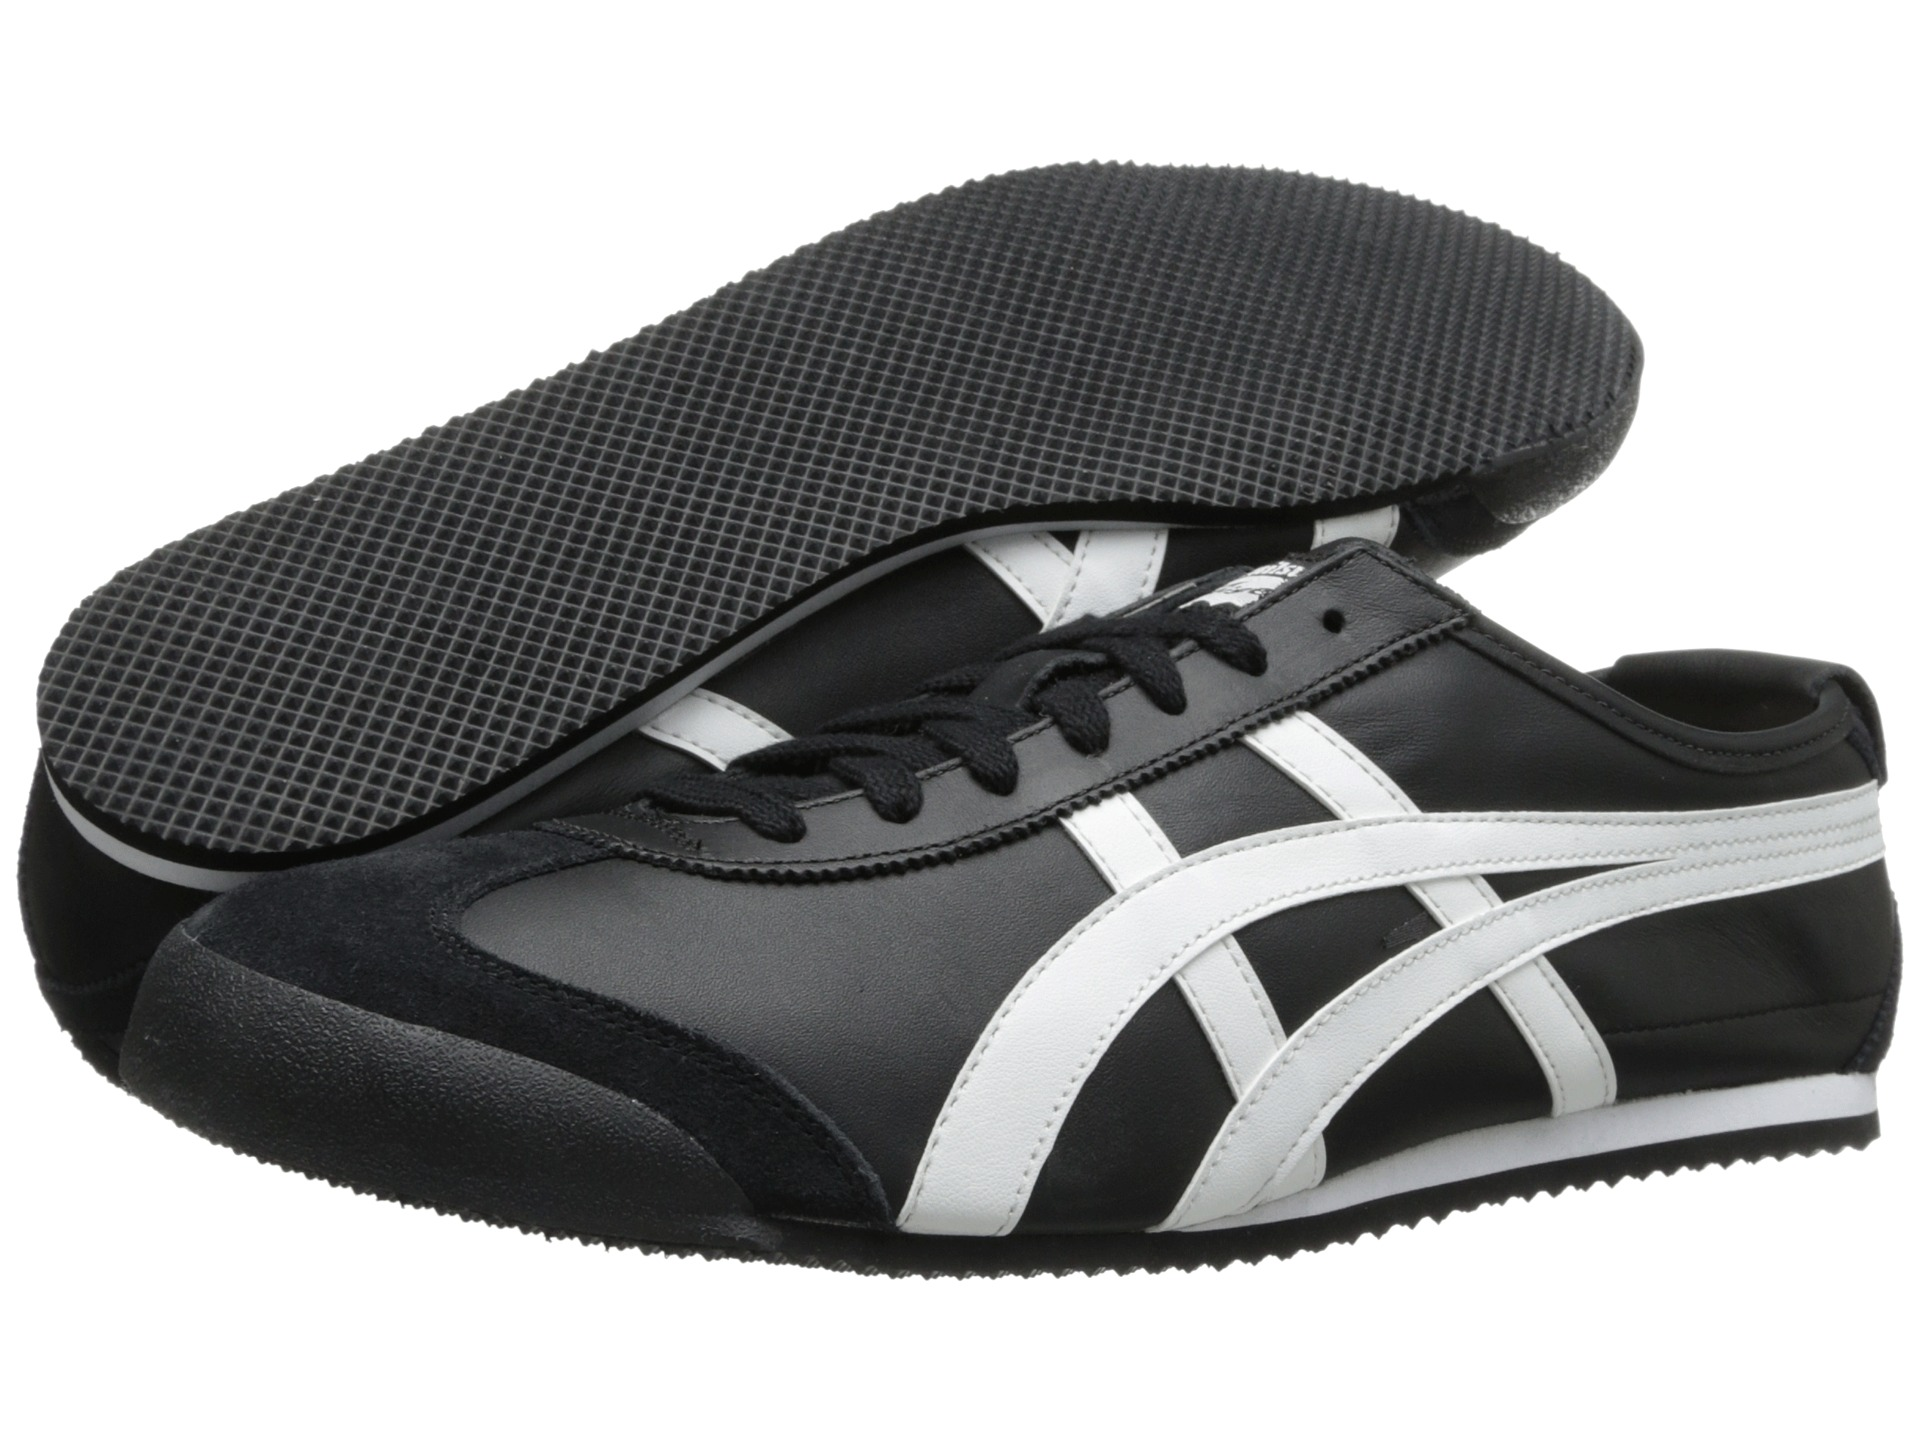 onitsuka tiger black and white different styles